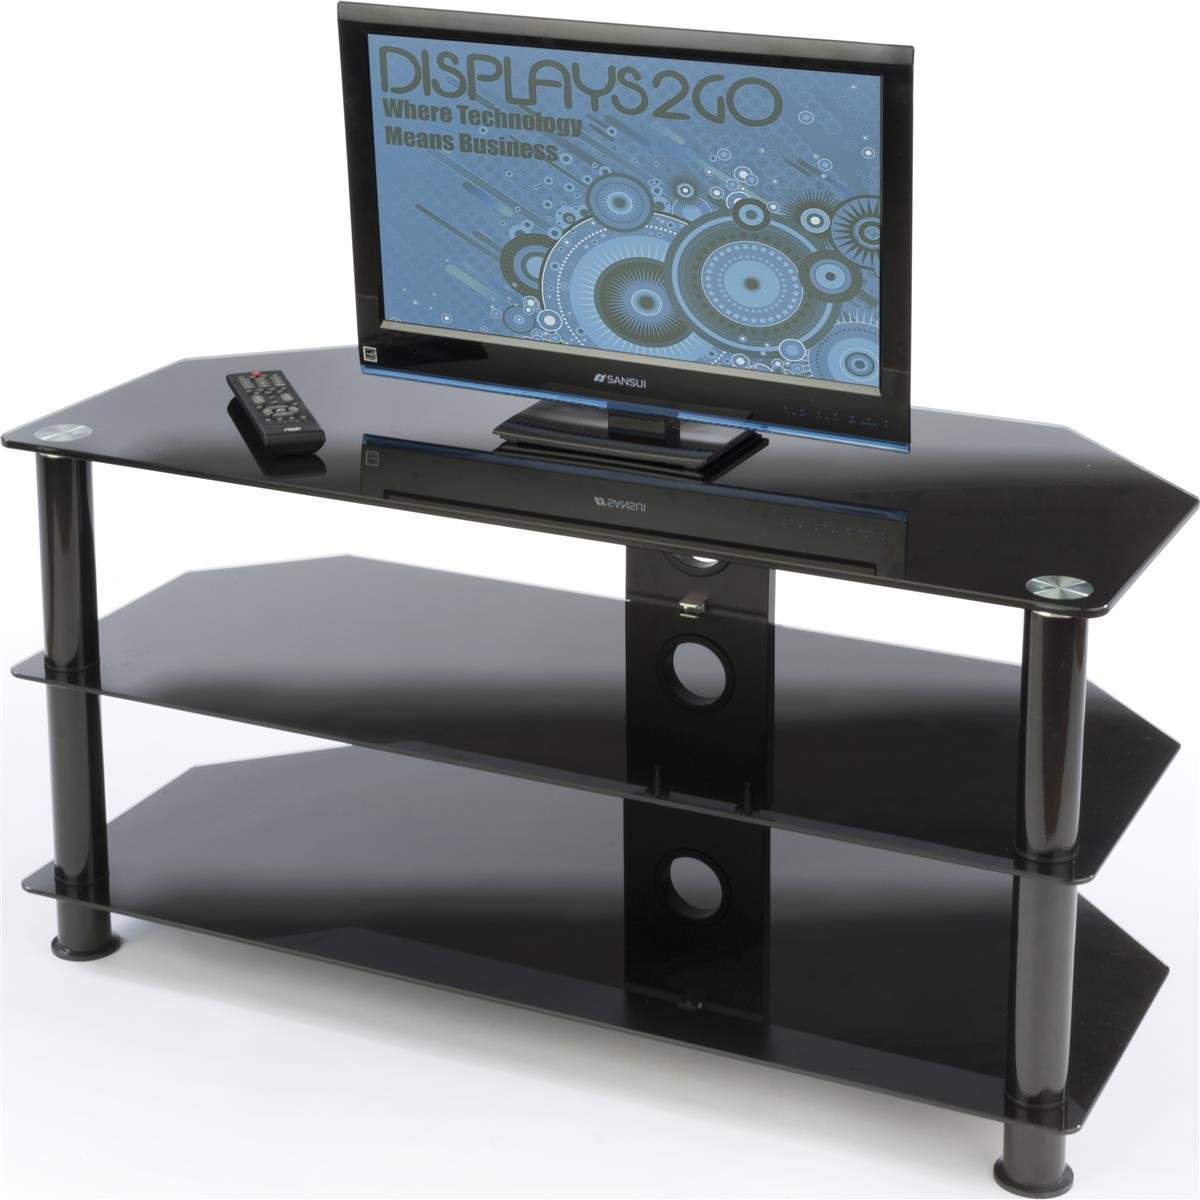 Displays2go PTTV50BLK 42-Inch and 50-Inch HDTV Stand, Entertainment Center and Tempered Glass Shelves (Black)